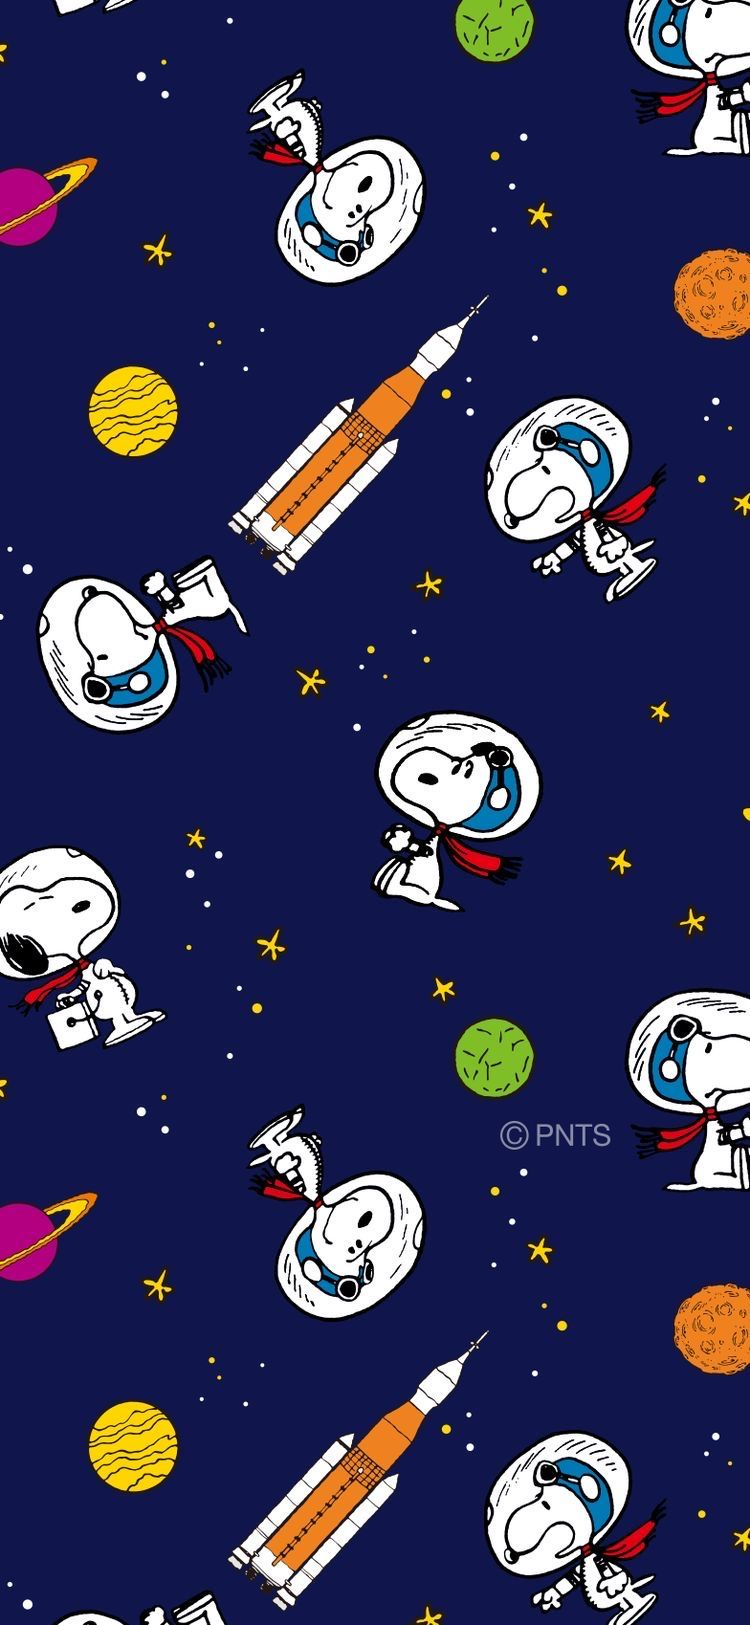 Pin by Martha on Snoopy in 2020 Snoopy wallpaper, Nasa